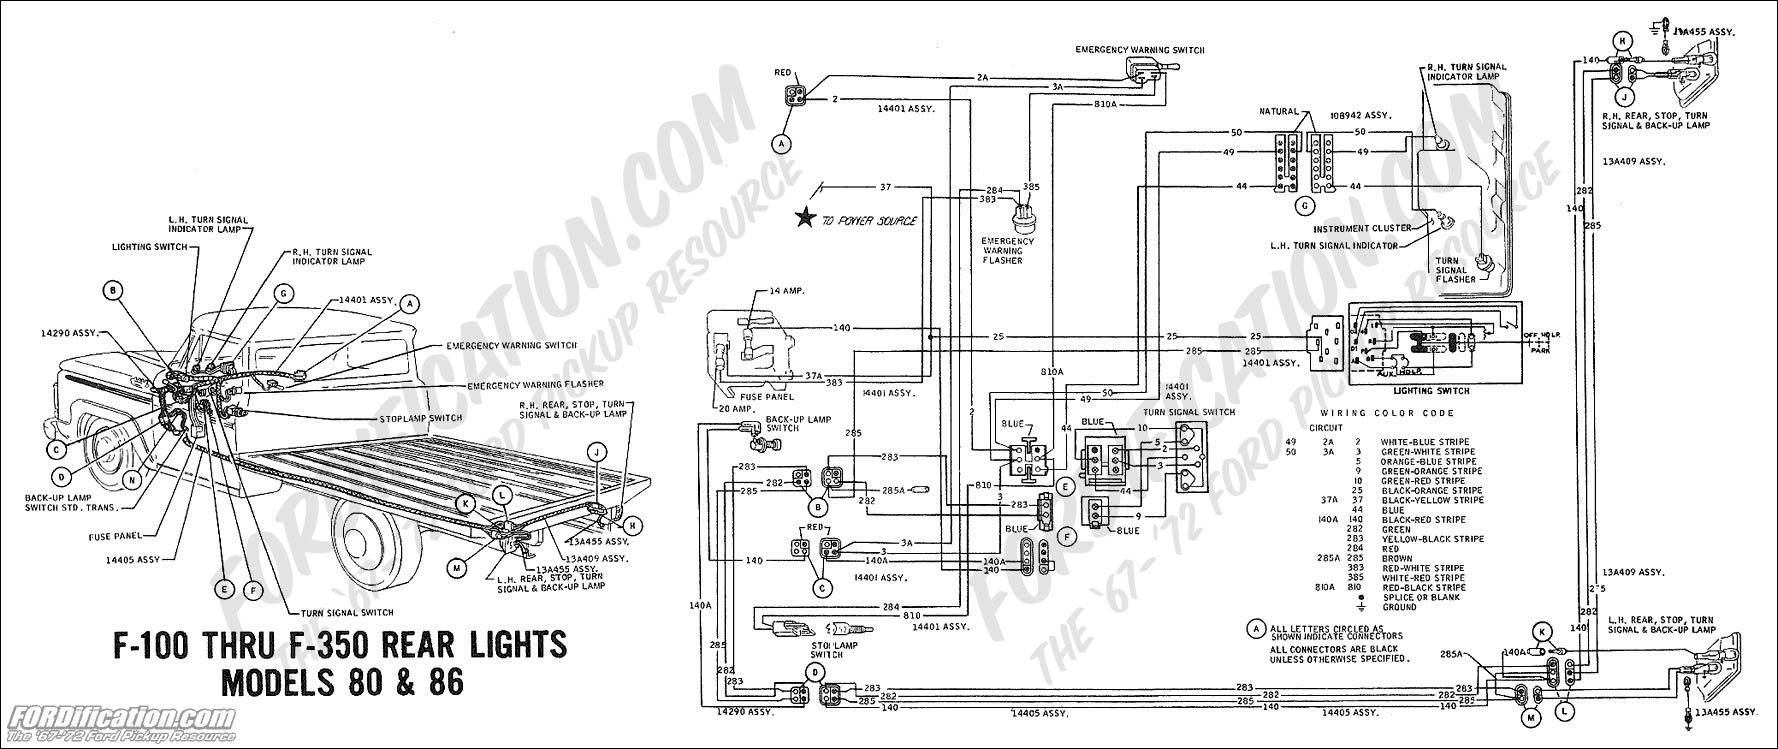 wiring_69rearlights mdls80 86 ford truck technical drawings and schematics section h wiring Ford F700 Wiring Diagrams at bayanpartner.co